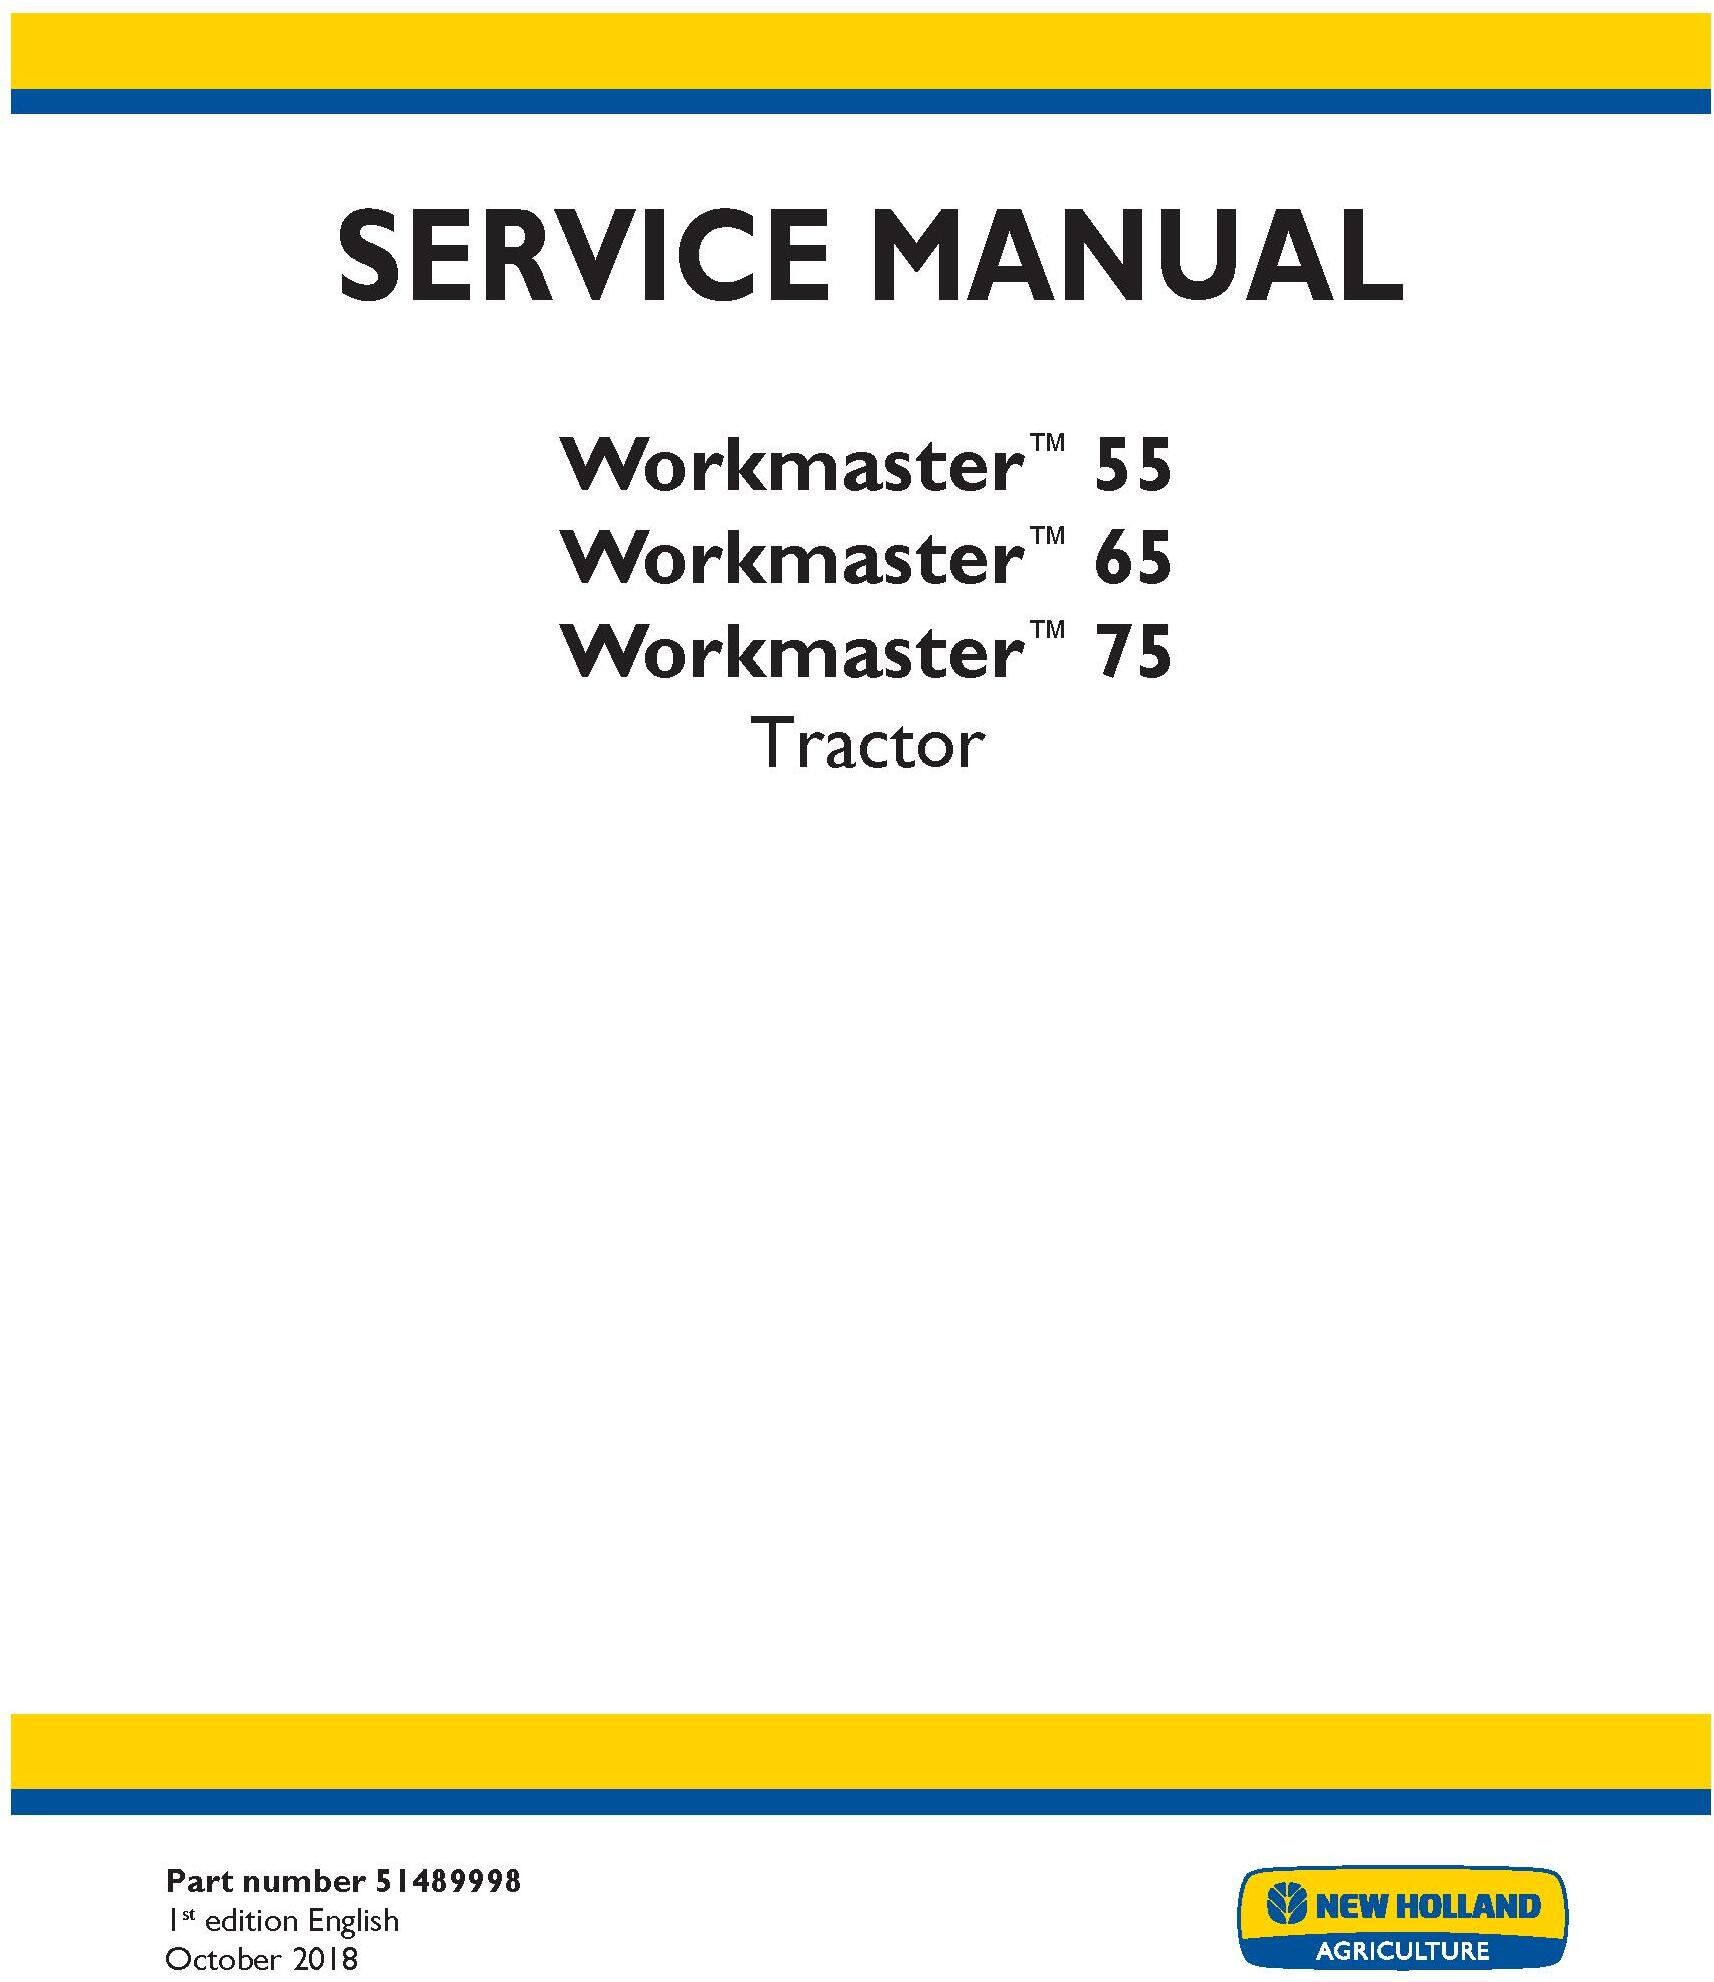 New Holland Workmaster 55, Workmaster 65, Workmaster 75 Tractor Service Manual - 19517